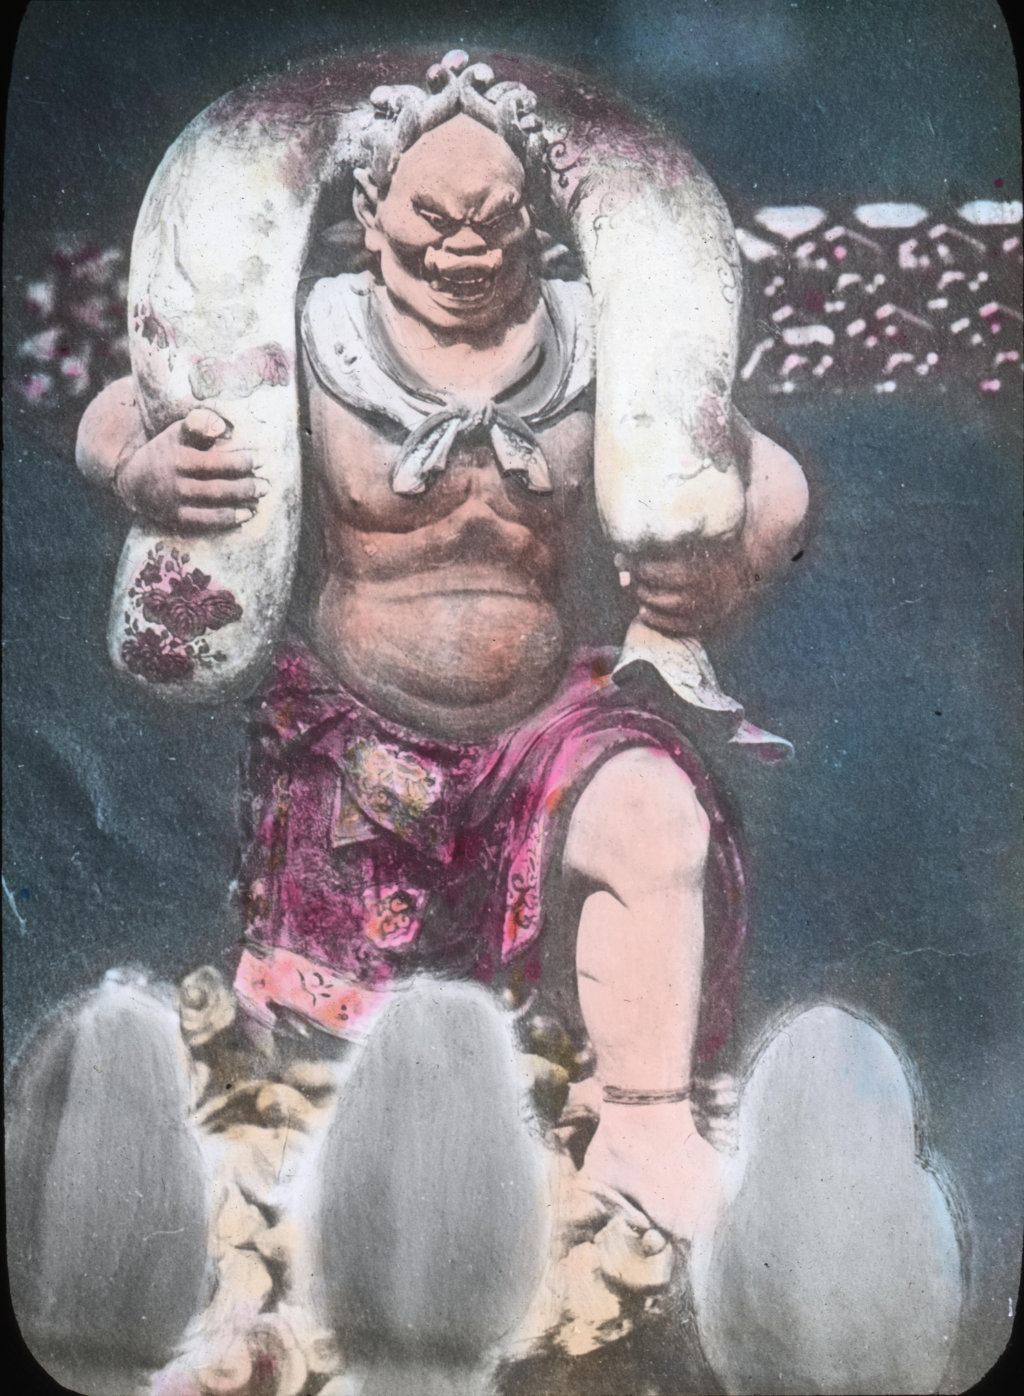 Lantern slide: Japanese god of wind, Fujin